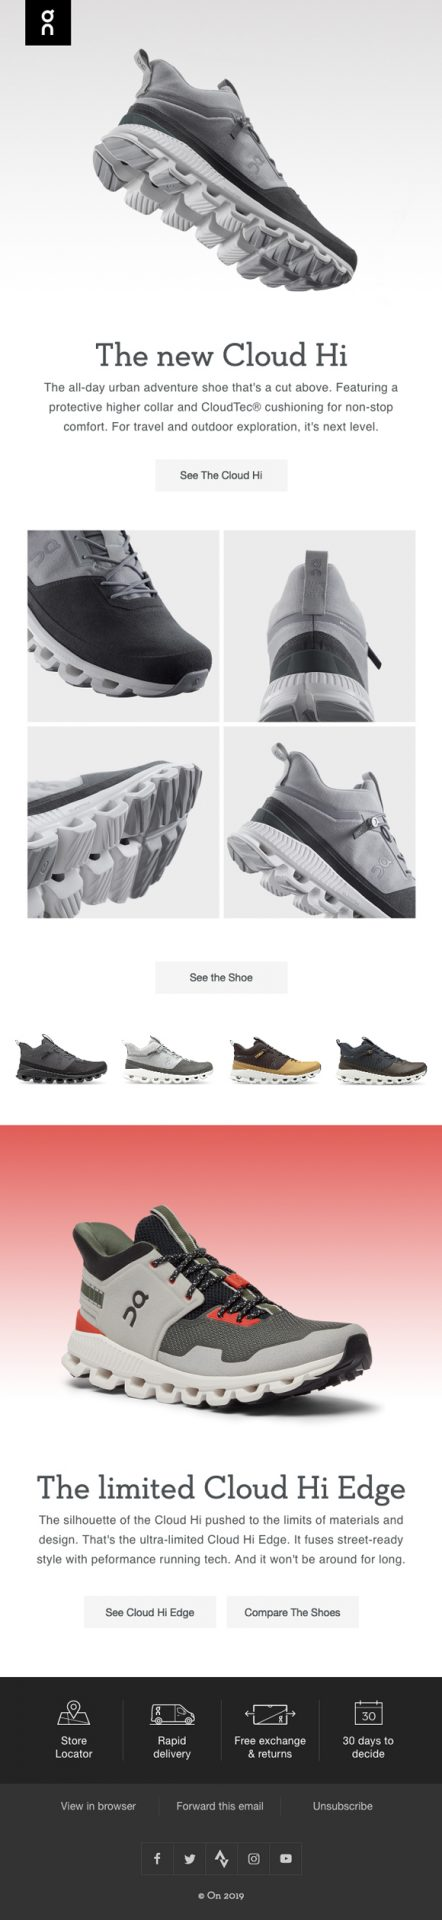 New Product or Specials by On Running